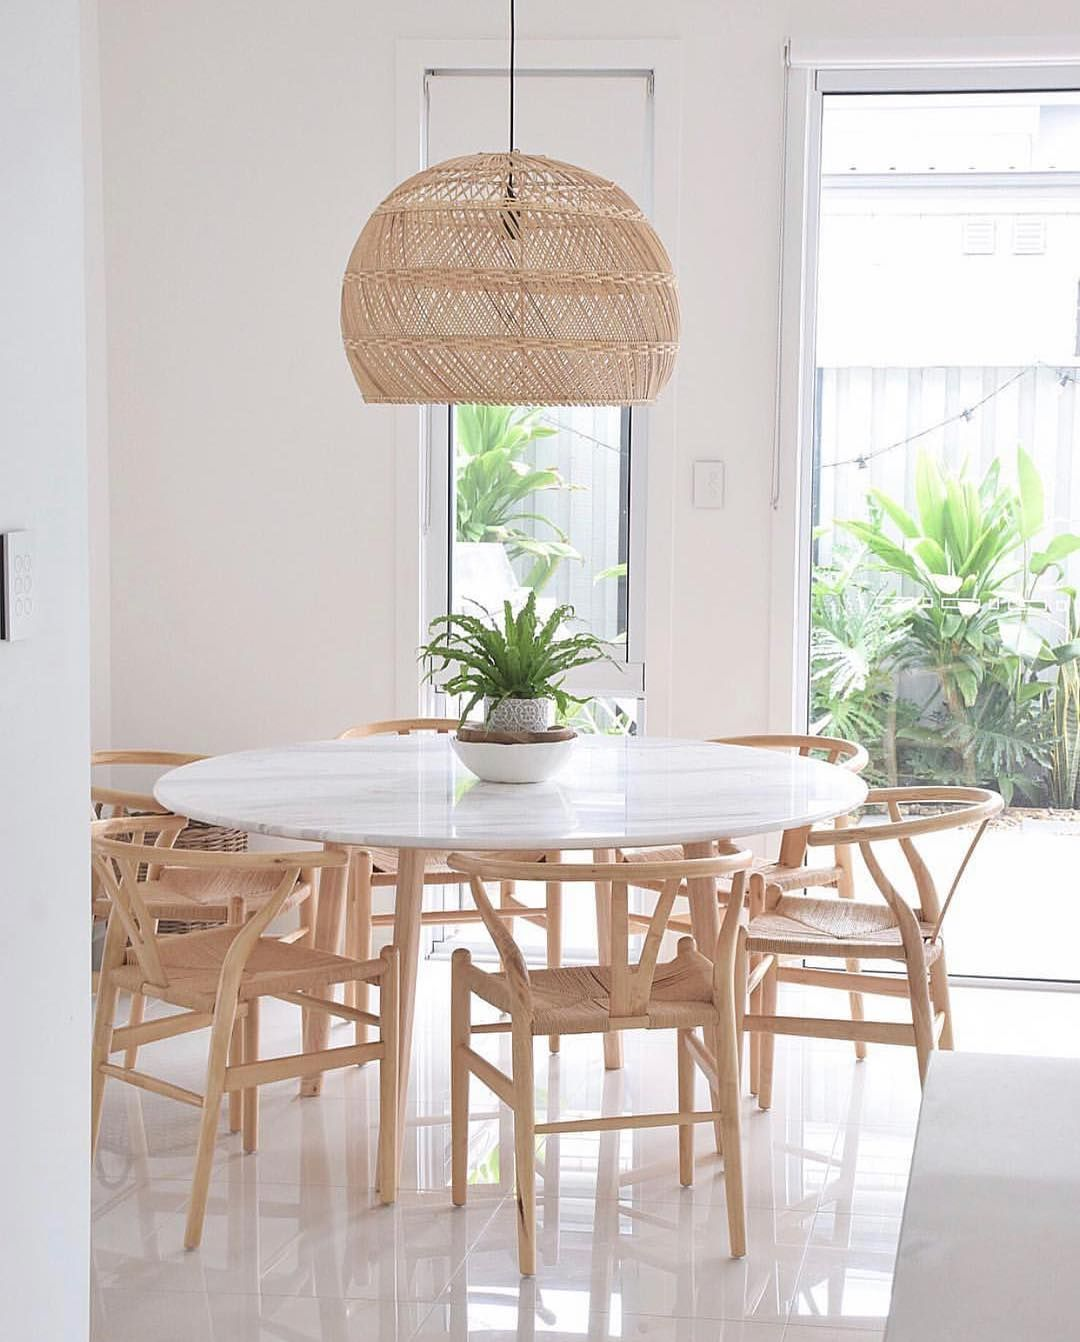 Furniture By Harpers Project On Instagram Beautiful Natural Lit